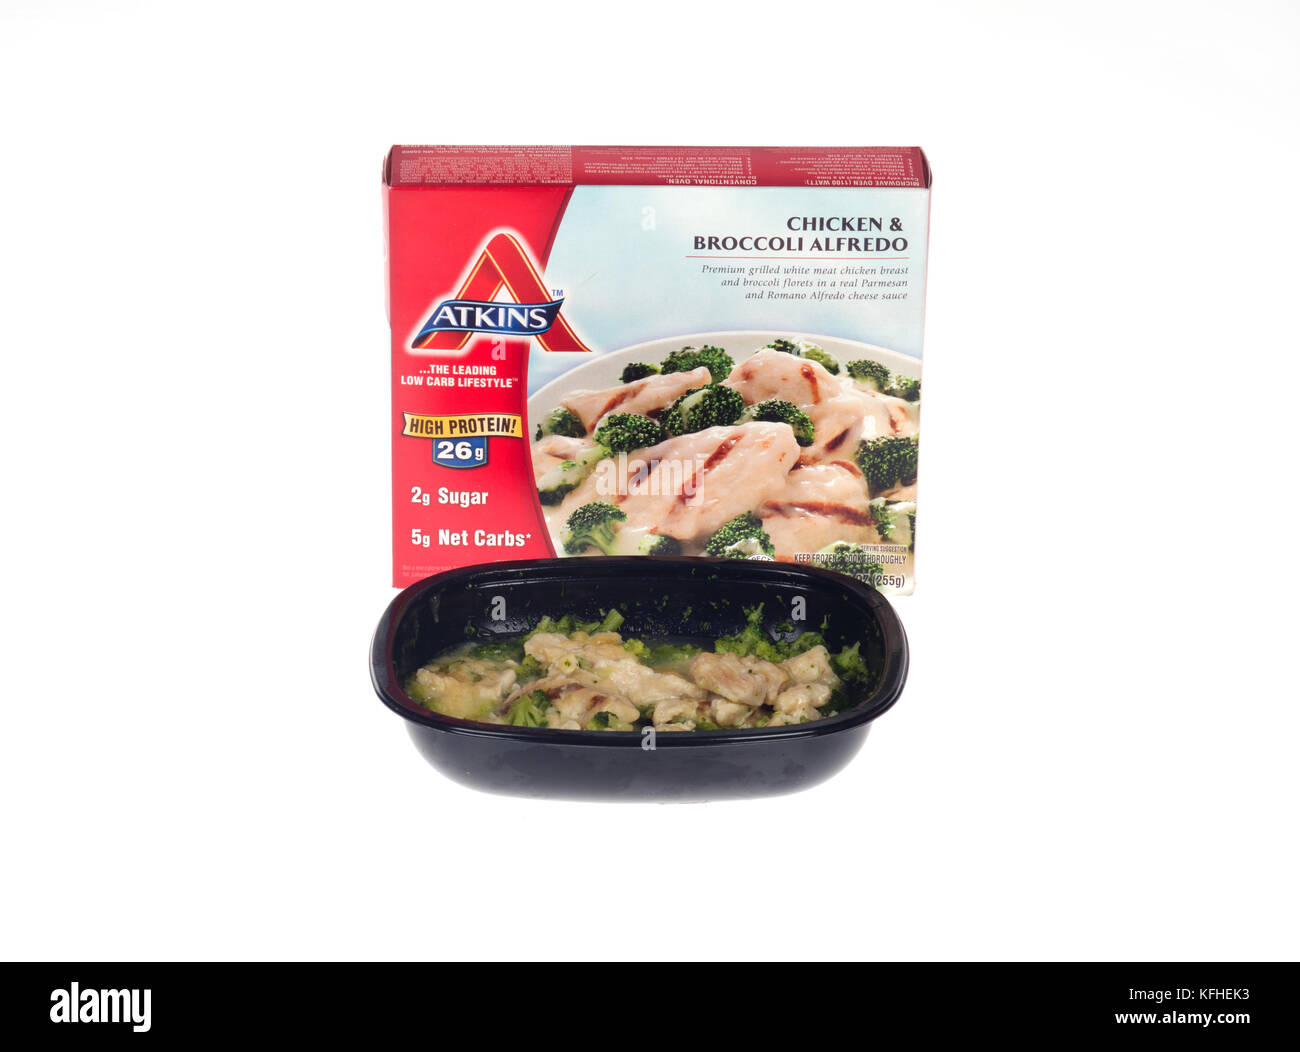 Microwaved Atkins Diet meal of chicken & broccoli alfredo with box and cooked  food tray - Stock Image